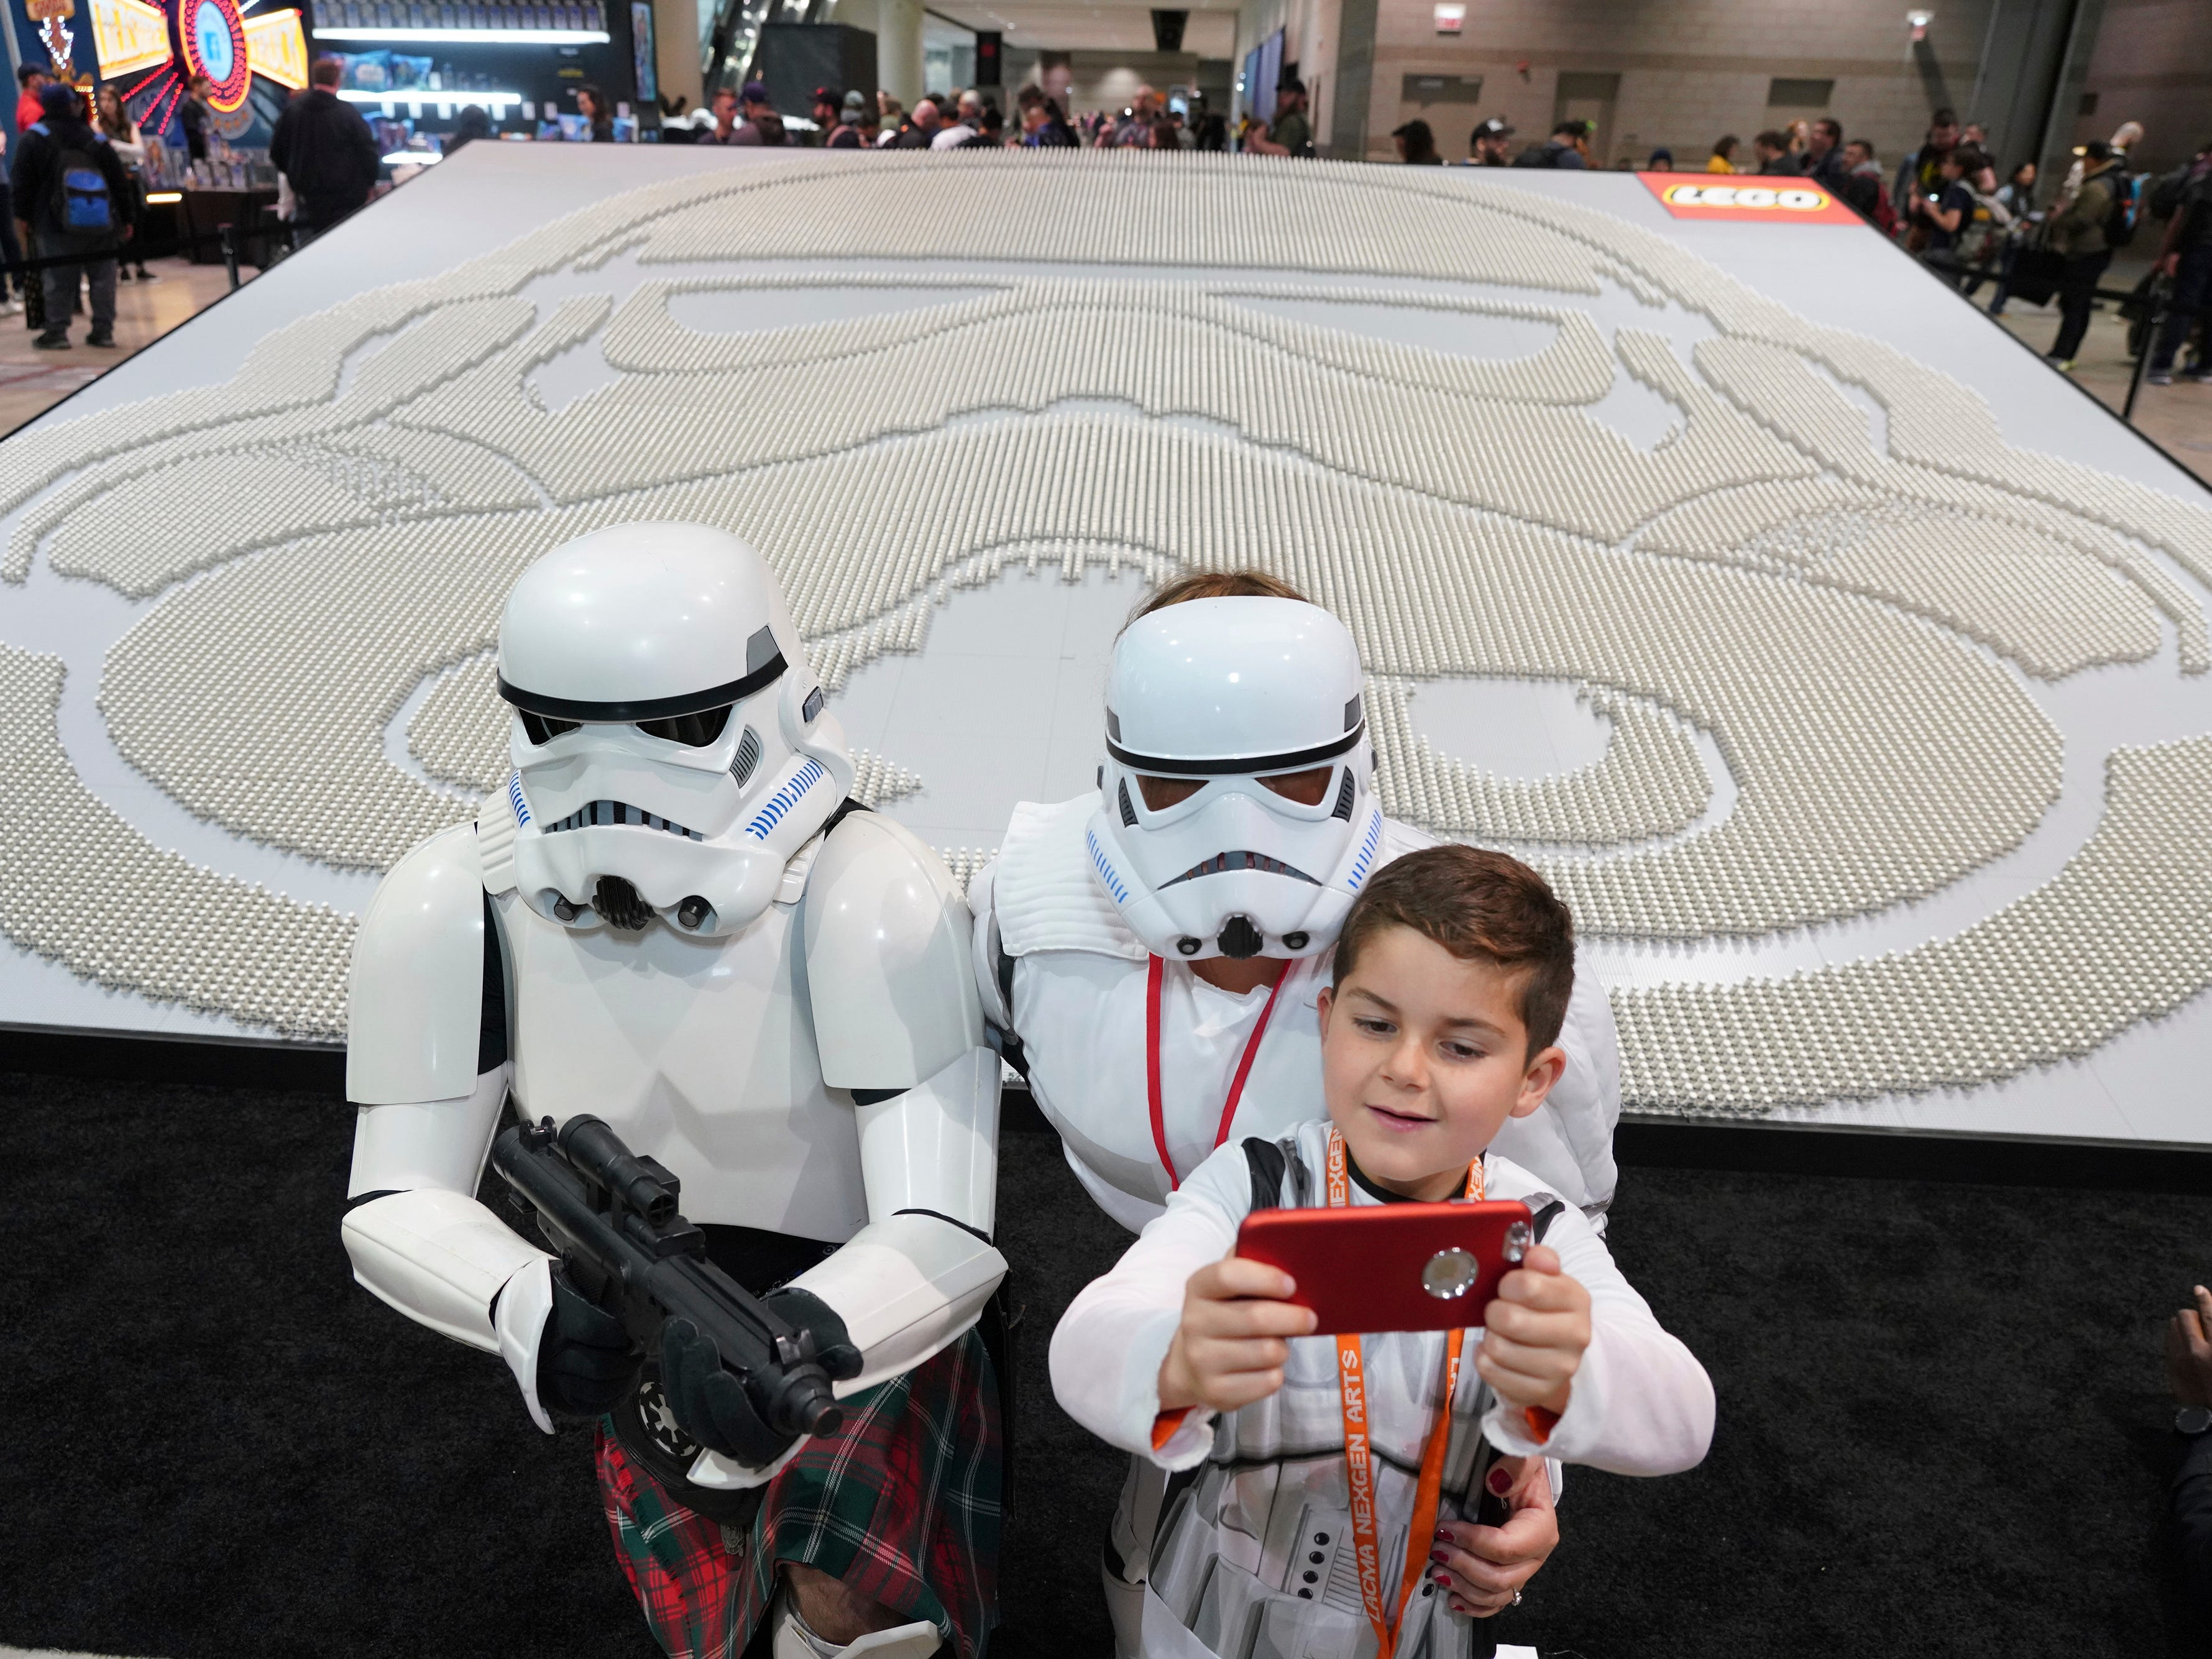 Star Warsenthusiast Joseph Naiman, 7, takes a selfie with his parents Marshall, left, and Danelle next to thelargestdisplay ofLEGOStar Warsmini figures.